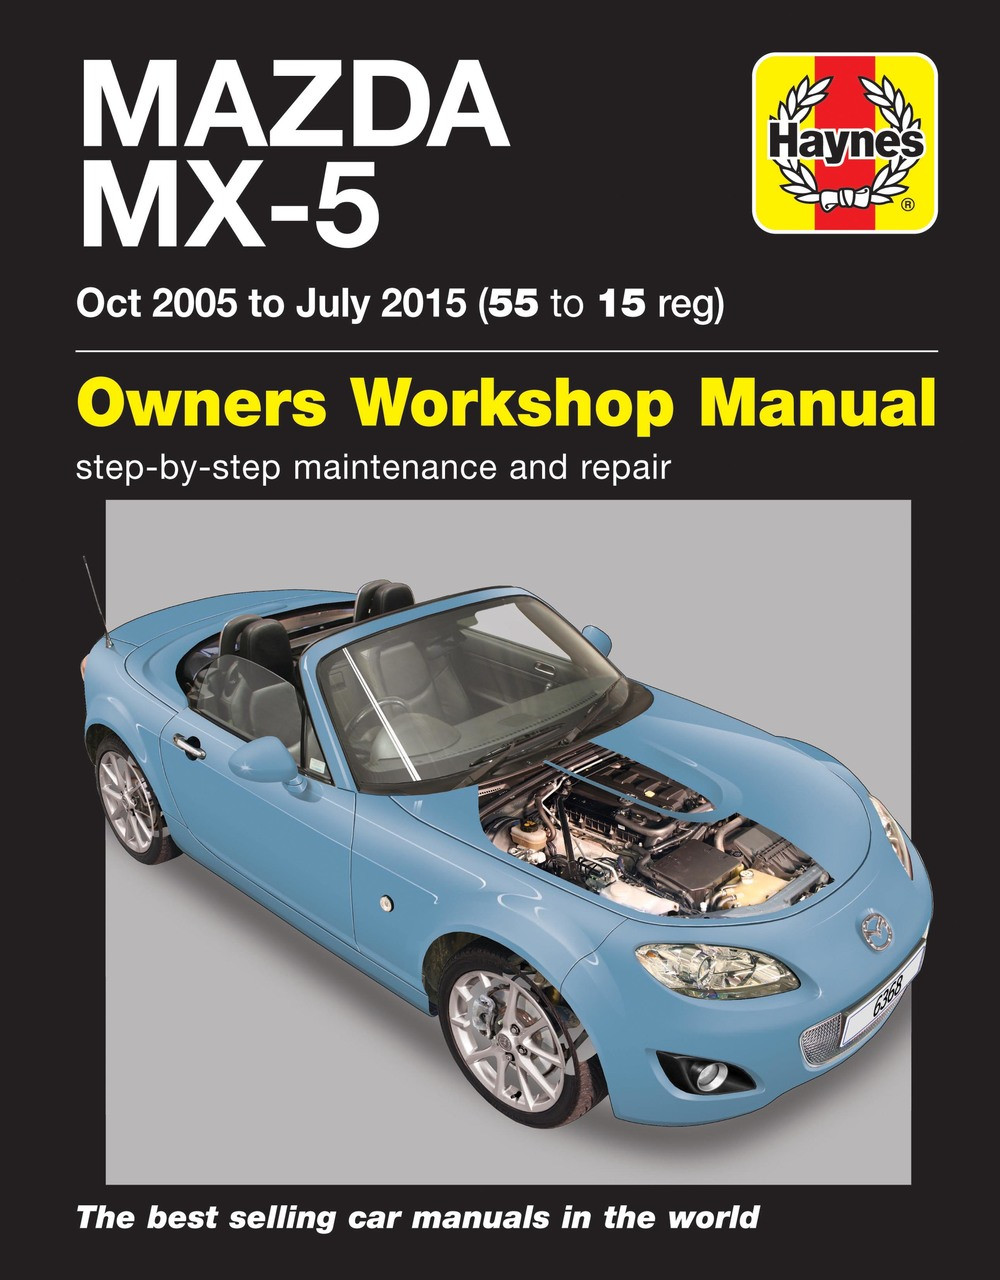 Mazda 3 Service Manual: How To Use This Manual